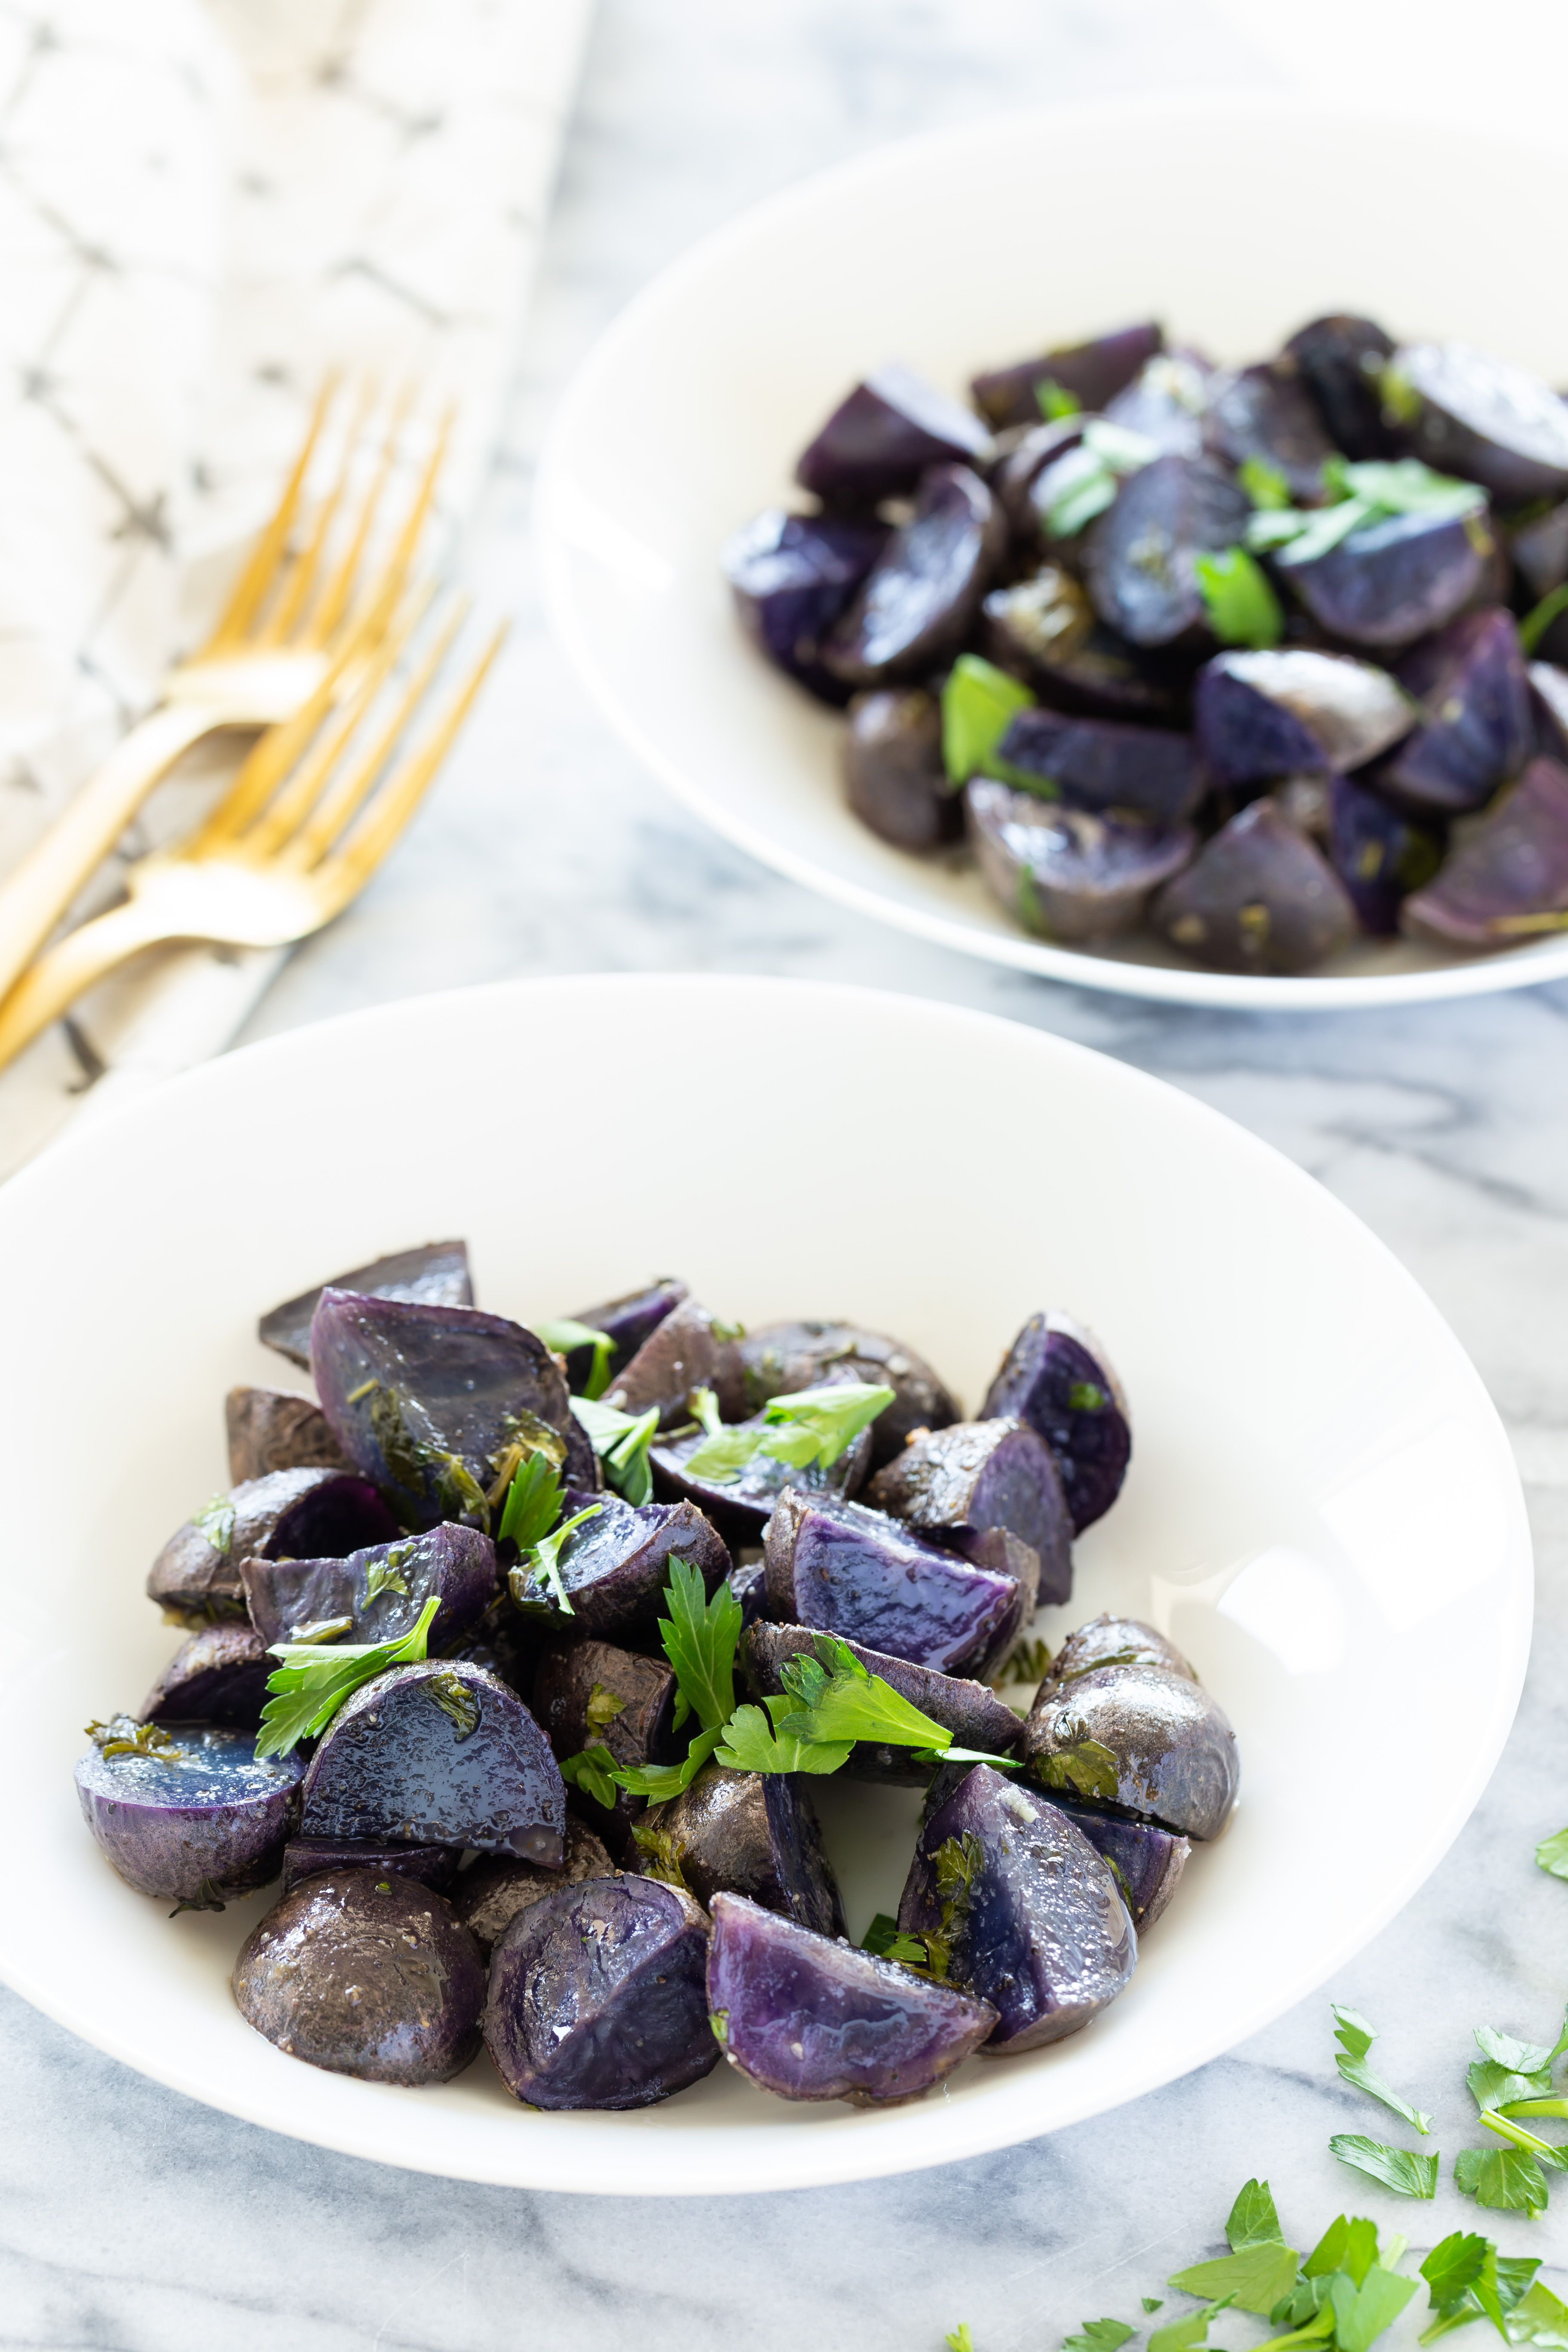 Roasted Purple Potatoes With Garlic and Cilantro